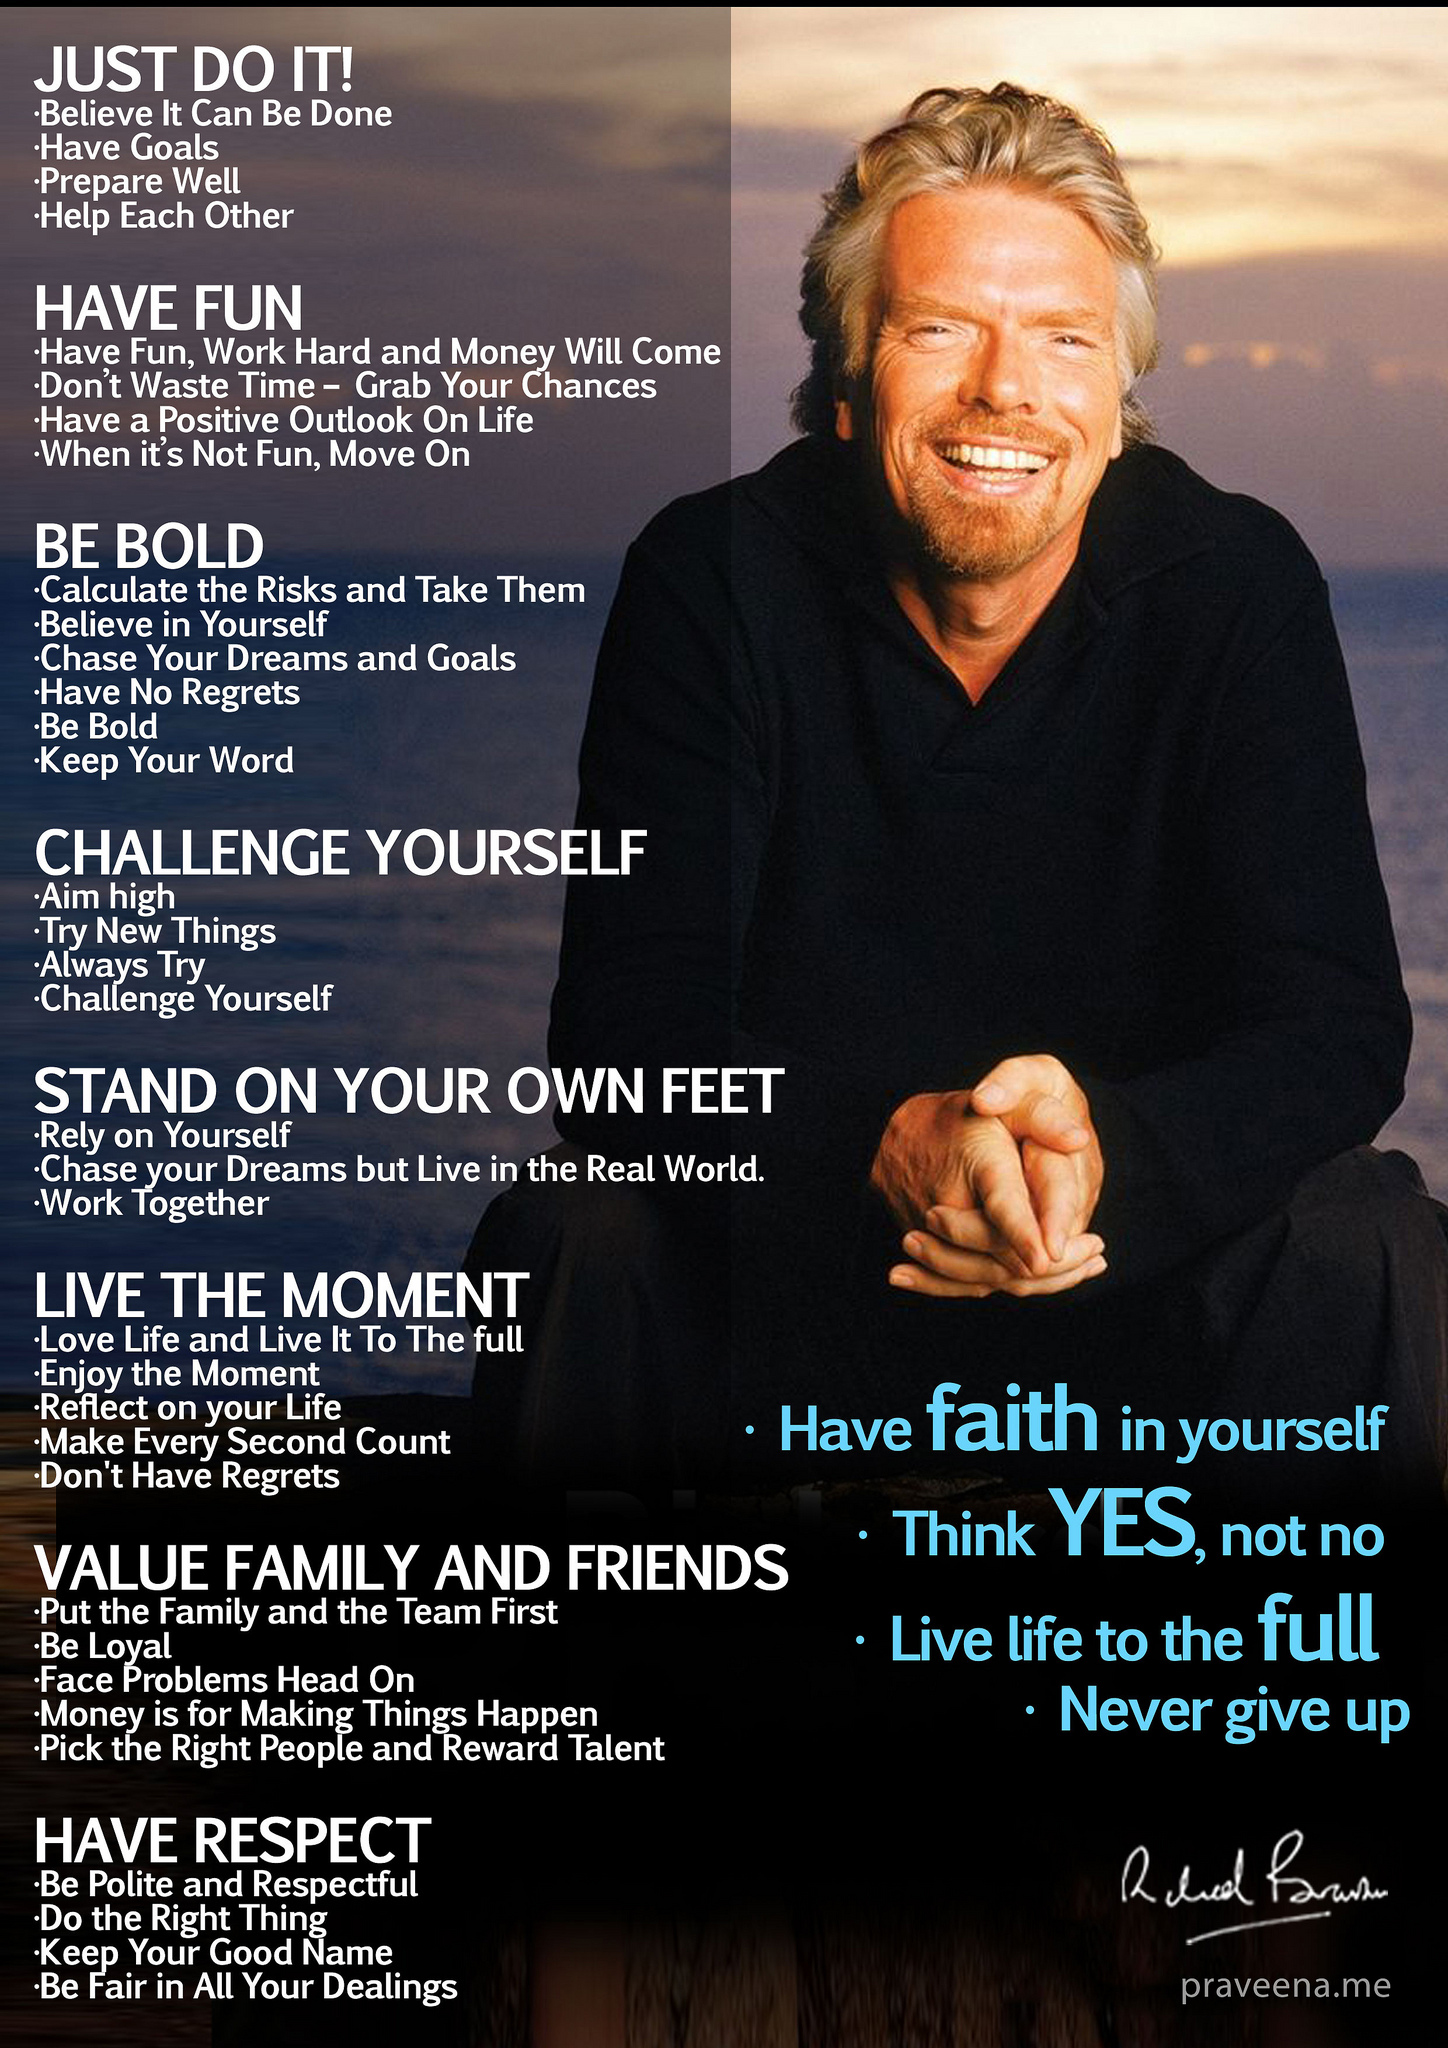 Richard Branson mantra